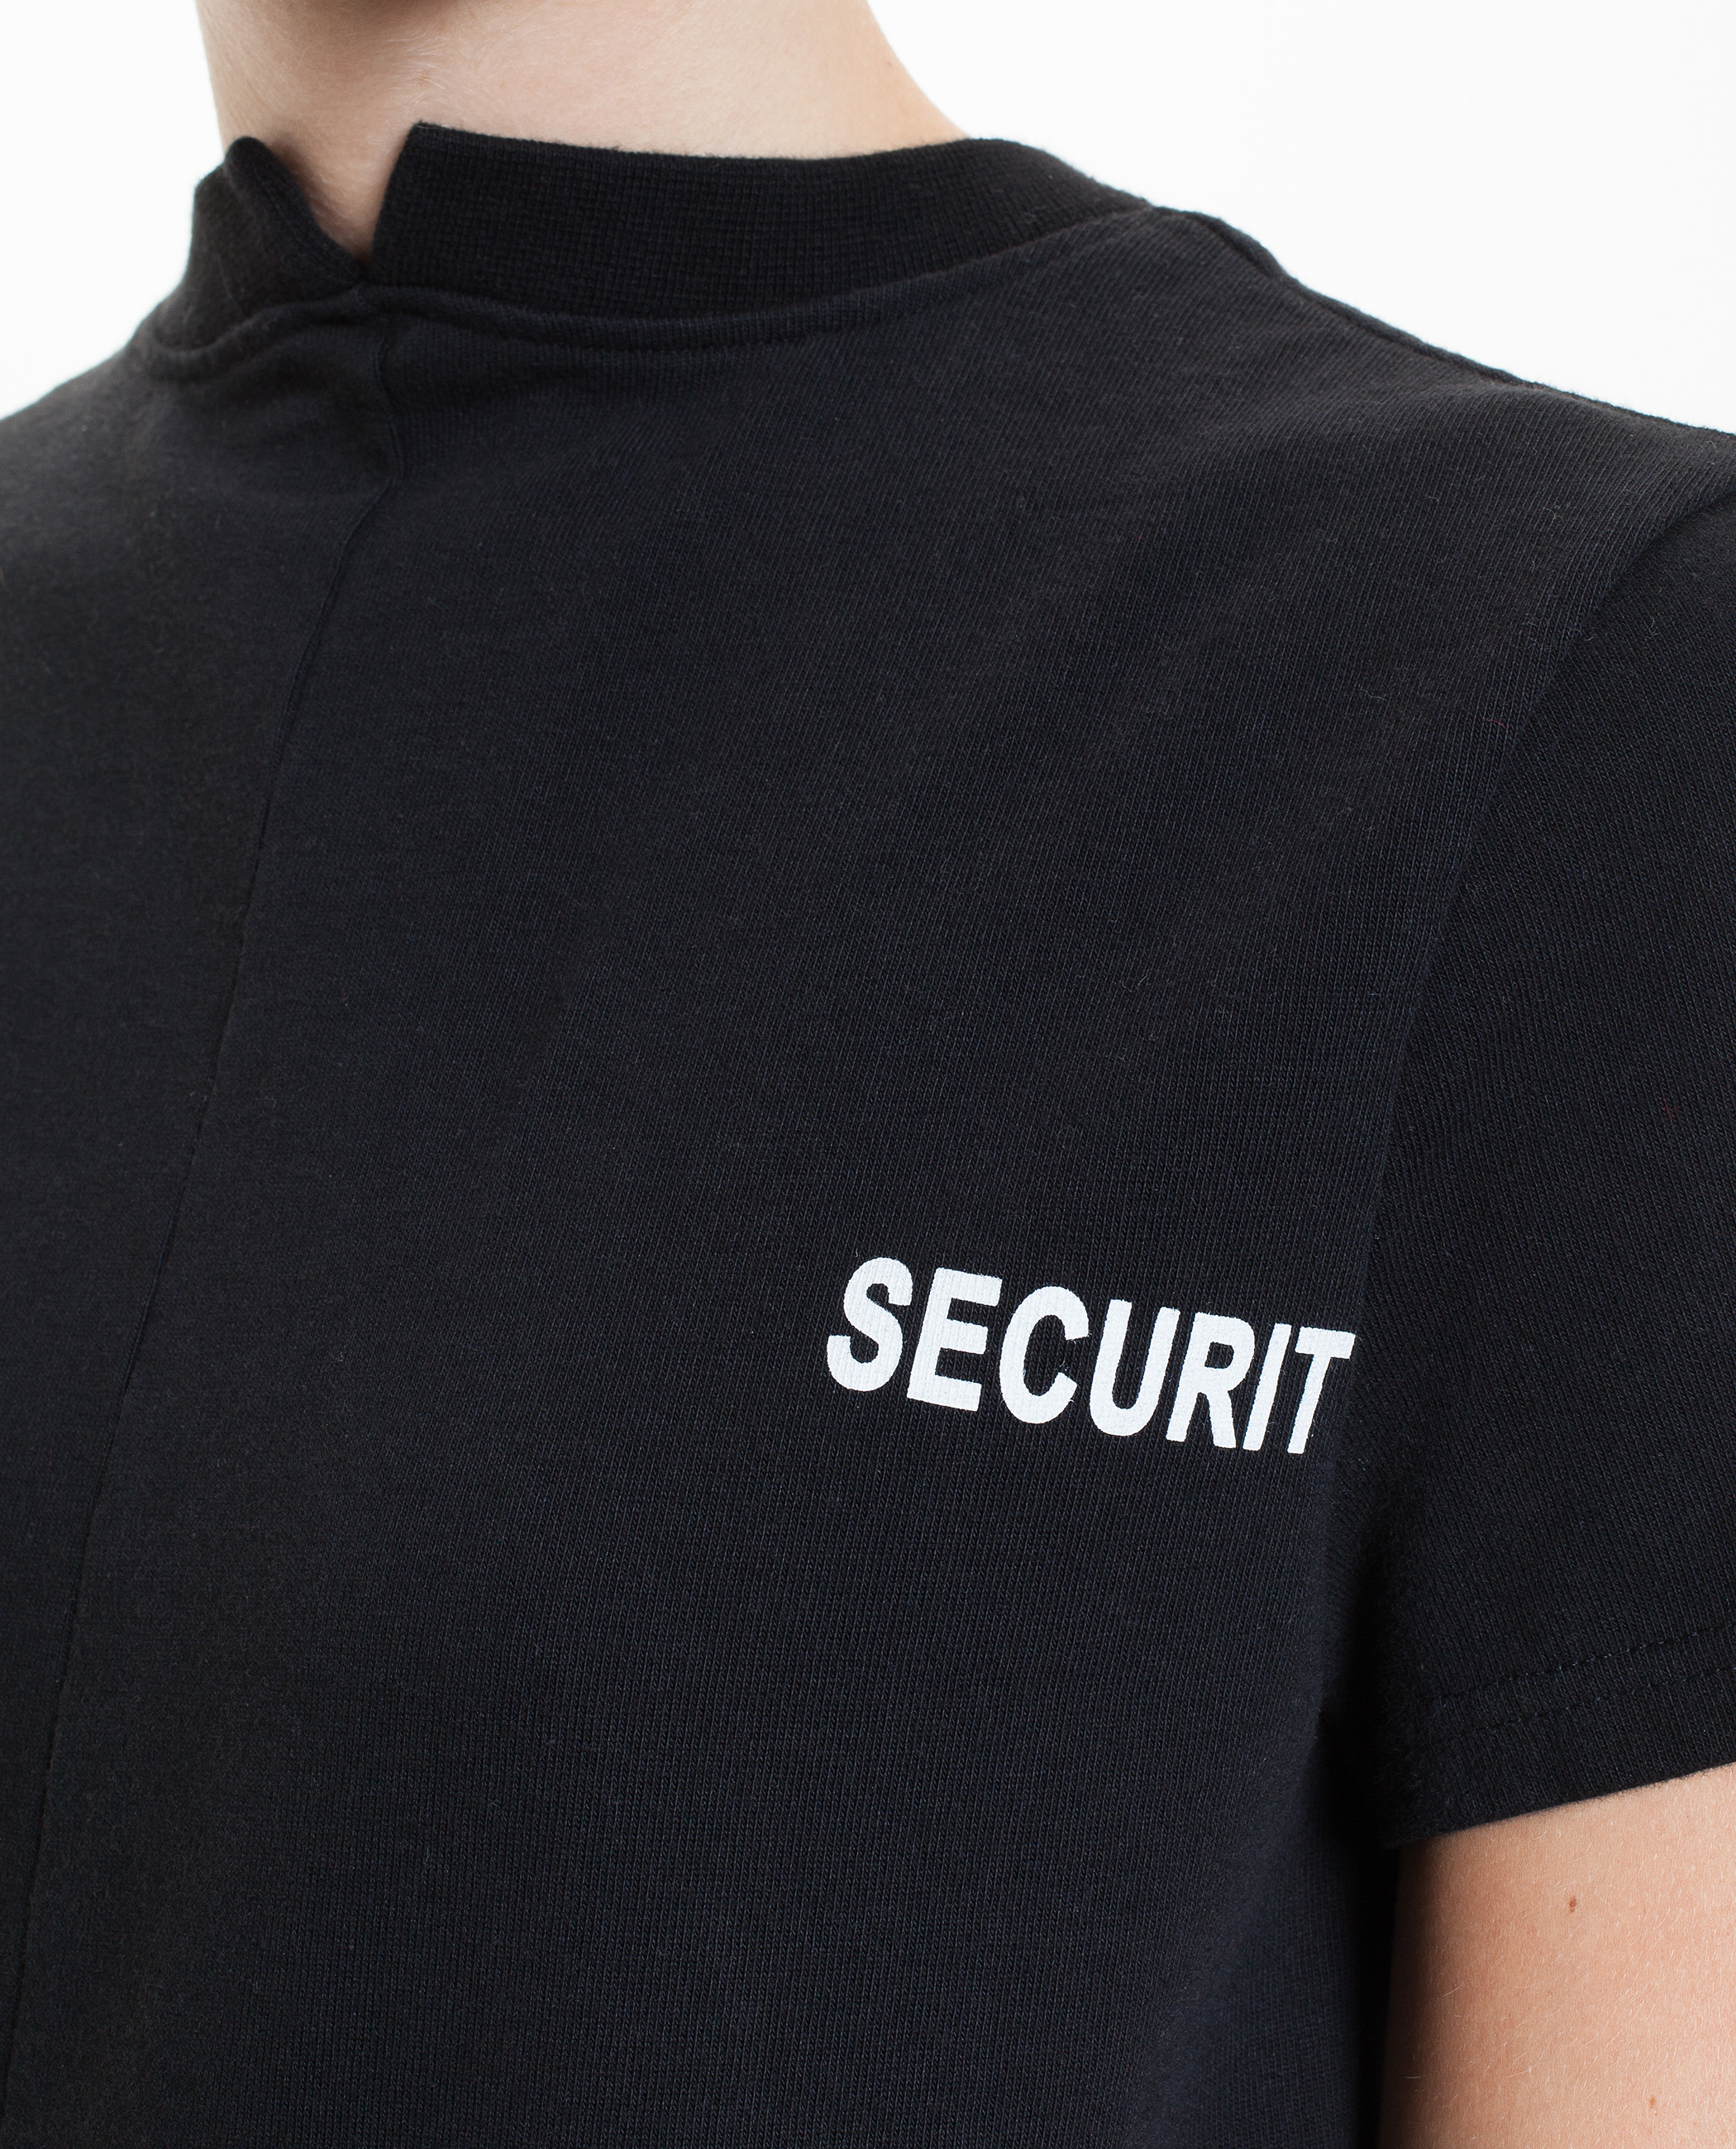 vetements securite t shirt in black lyst. Black Bedroom Furniture Sets. Home Design Ideas